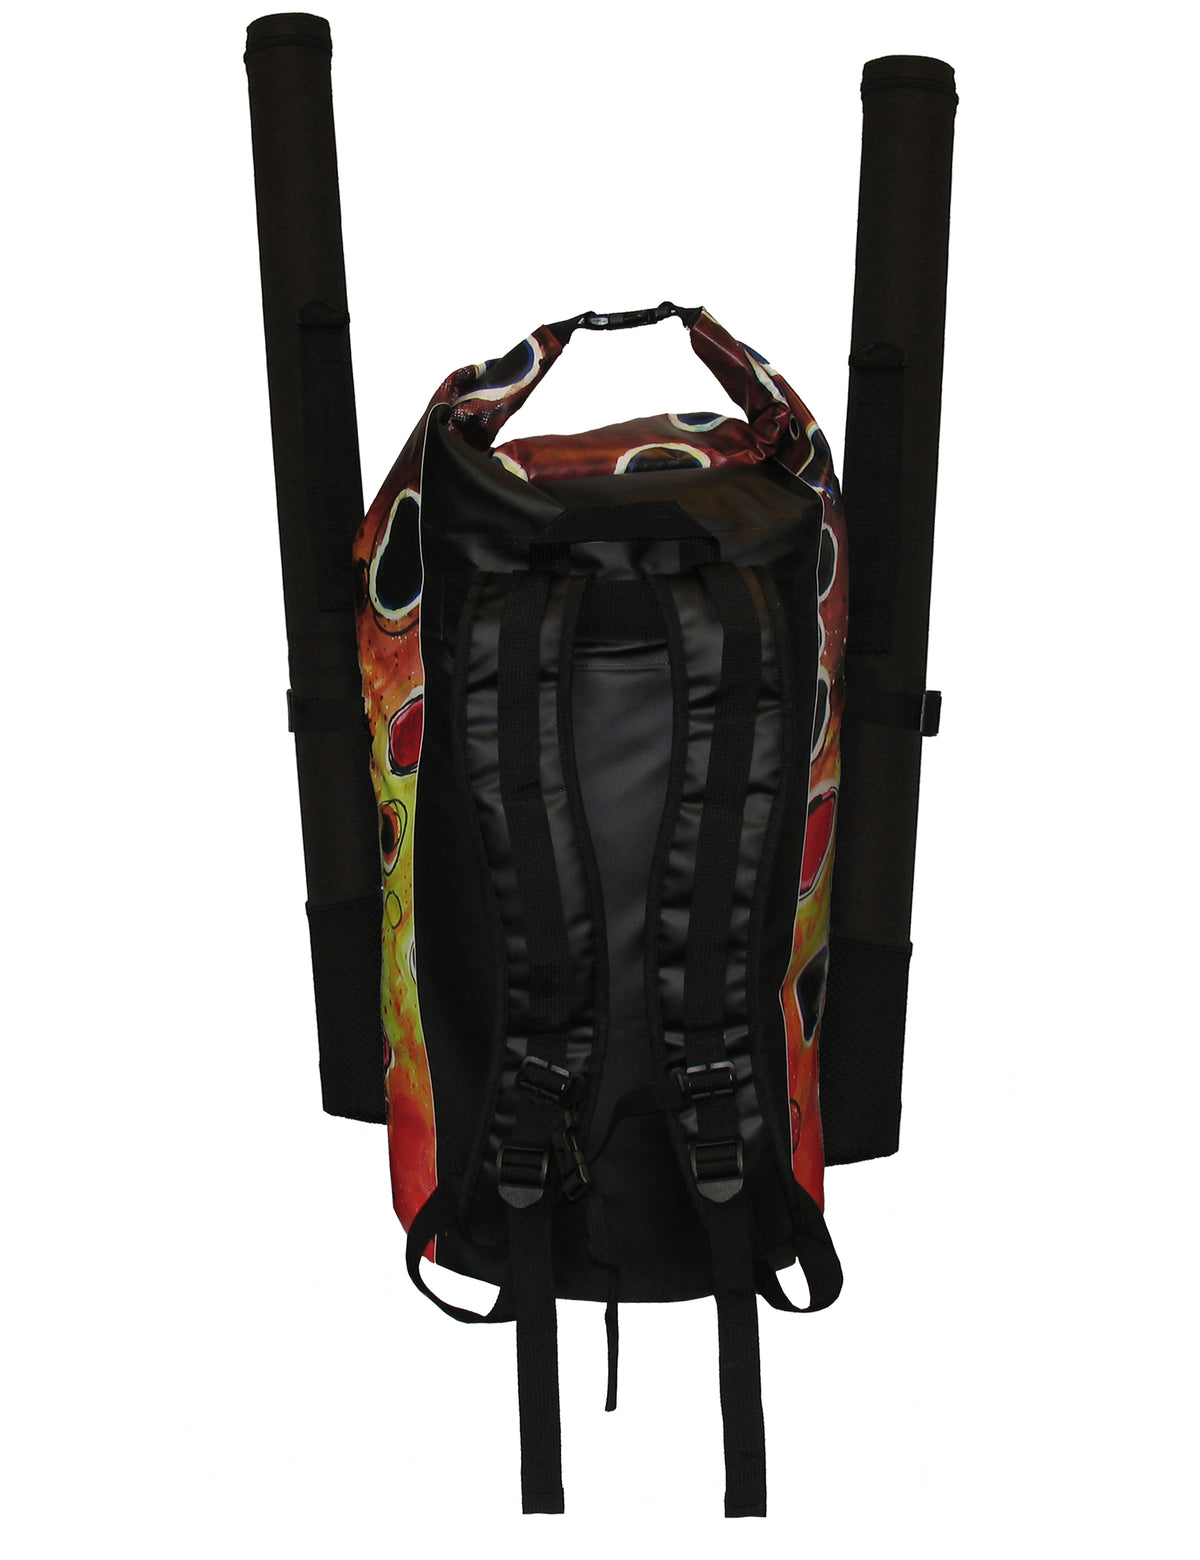 Brown Trout2 Dry Bag Backpack